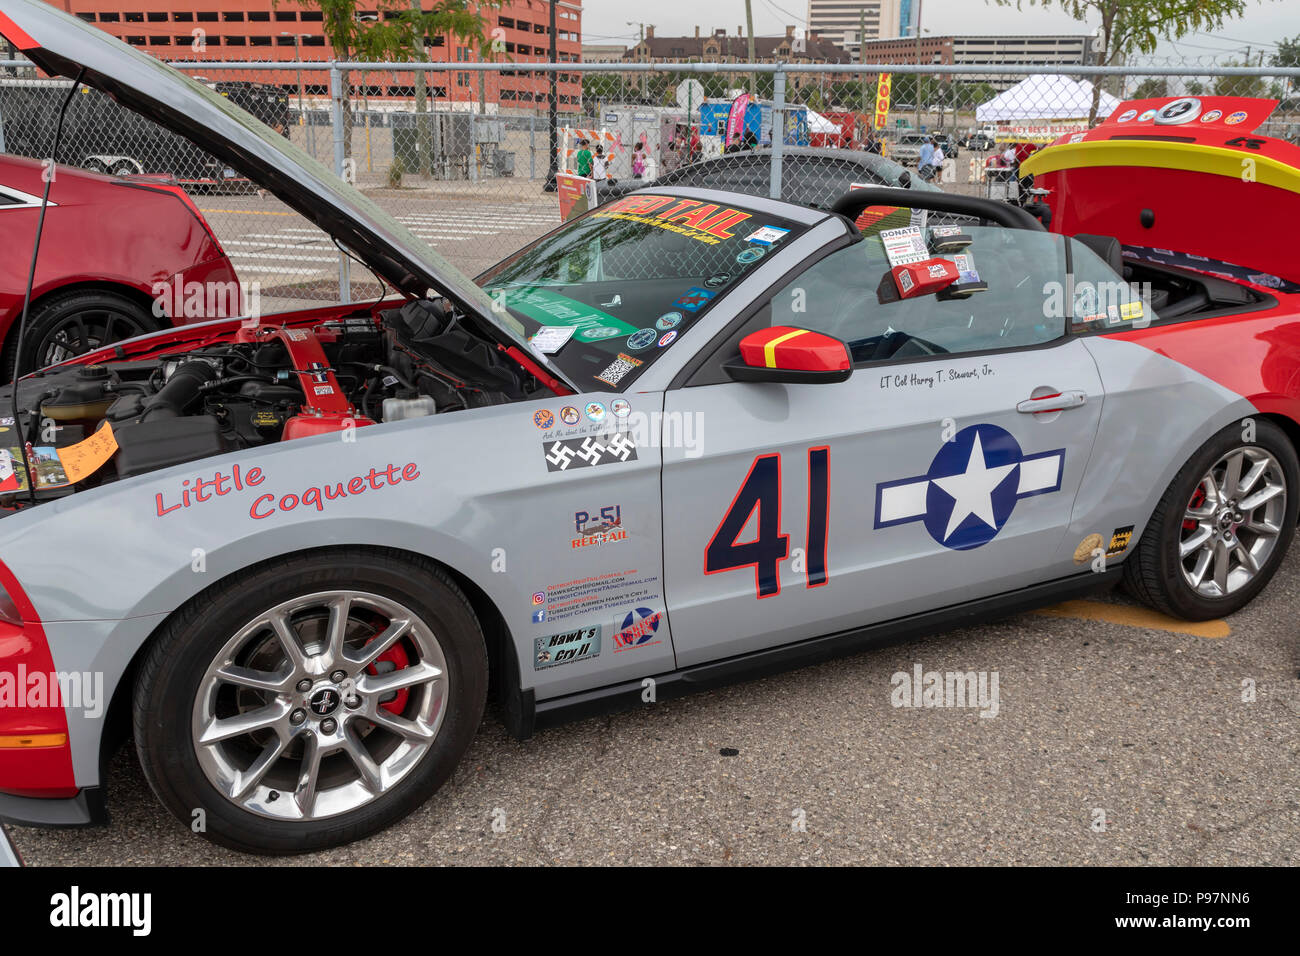 Detroit, Michigan - A Ford Mustang decorated to look like the P-51 Mustang flown by the Tuskegee Airmen during World War II. The car was on display at - Stock Image